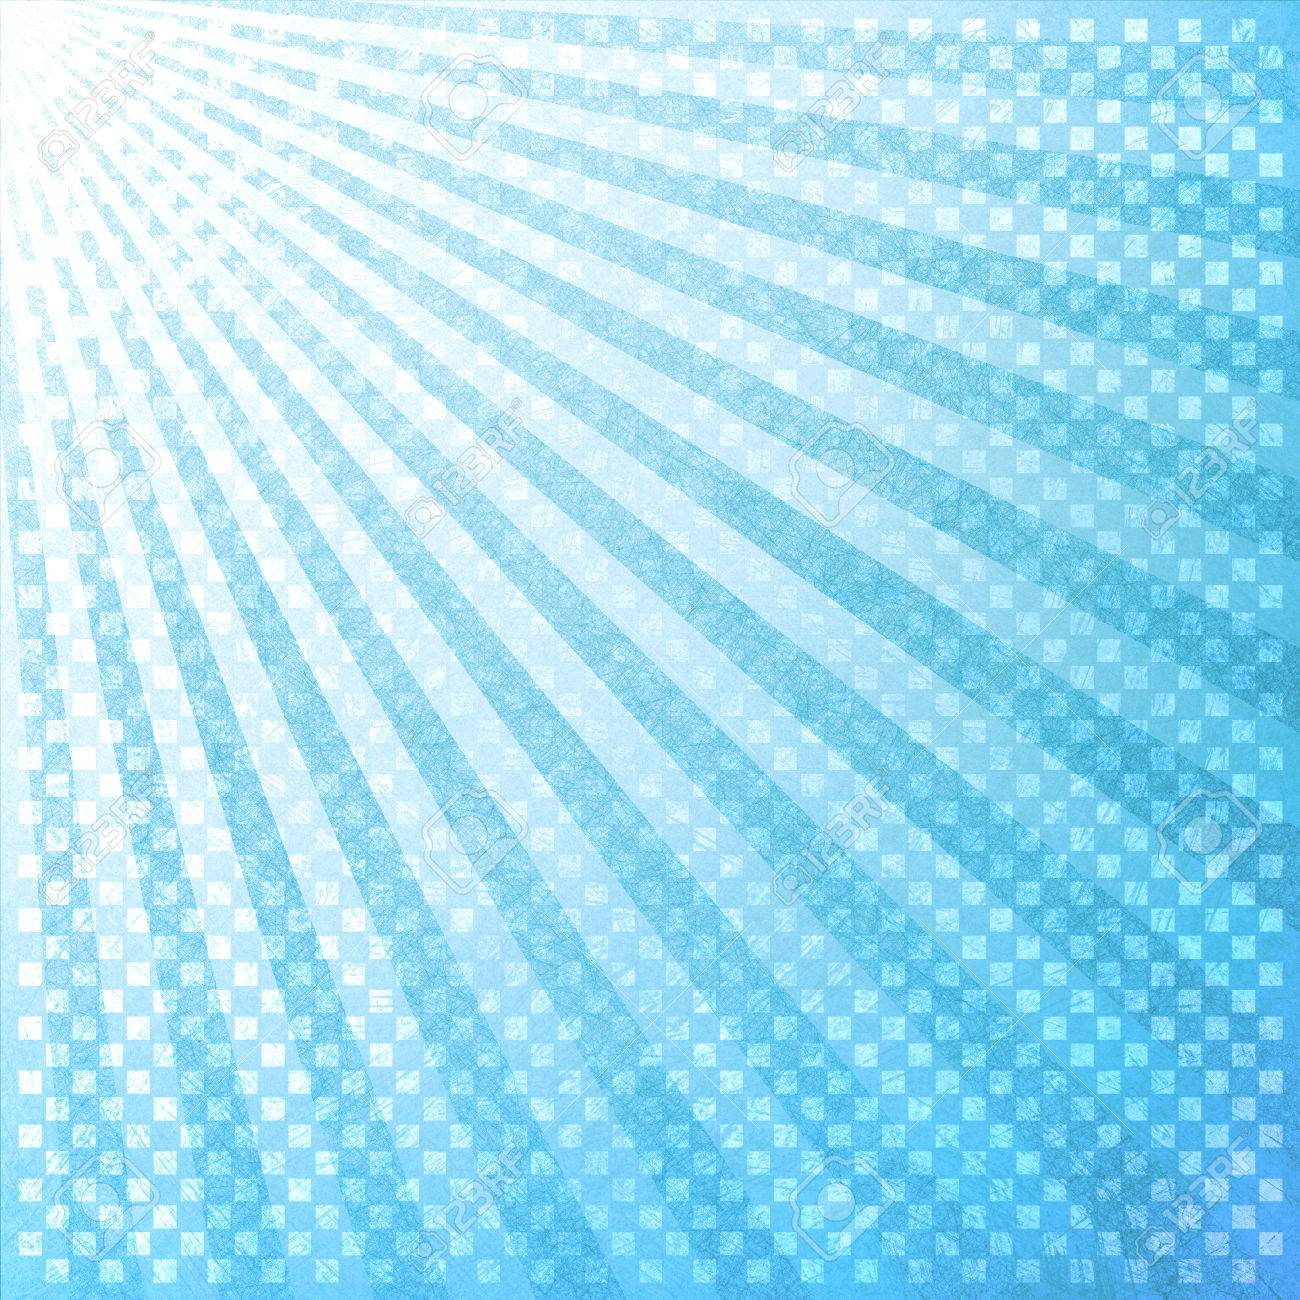 retro blue background layout design with striped pattern angle from top corner like sun beams or